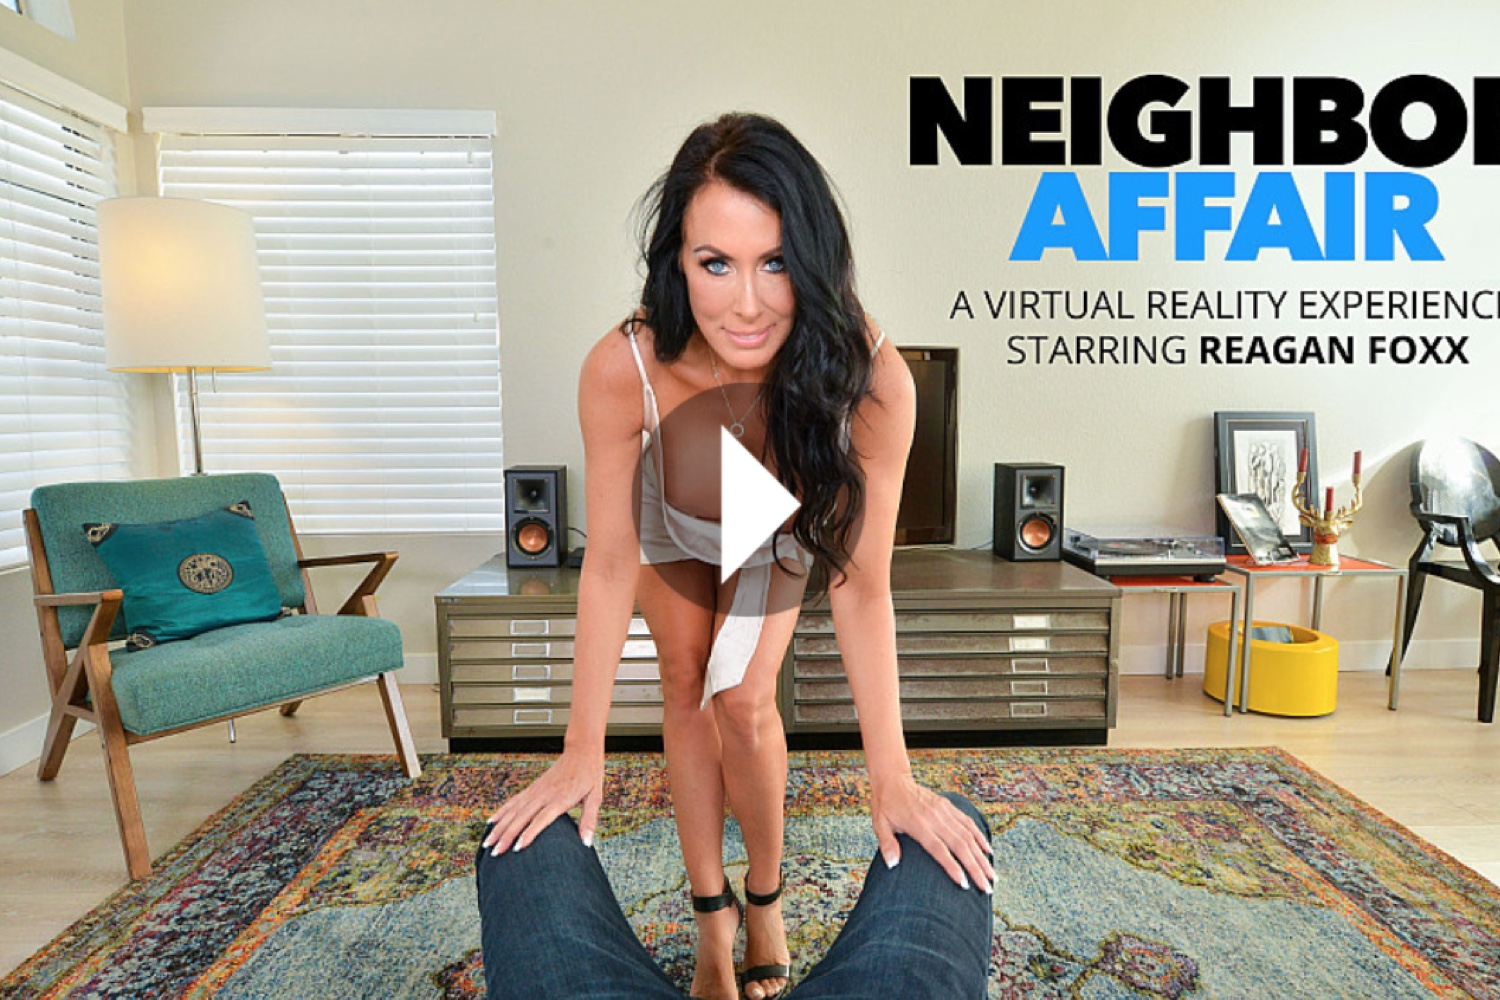 Neighbor Affair - Reagan Foxx VR Porn - Reagan Foxx Virtual Reality Porn